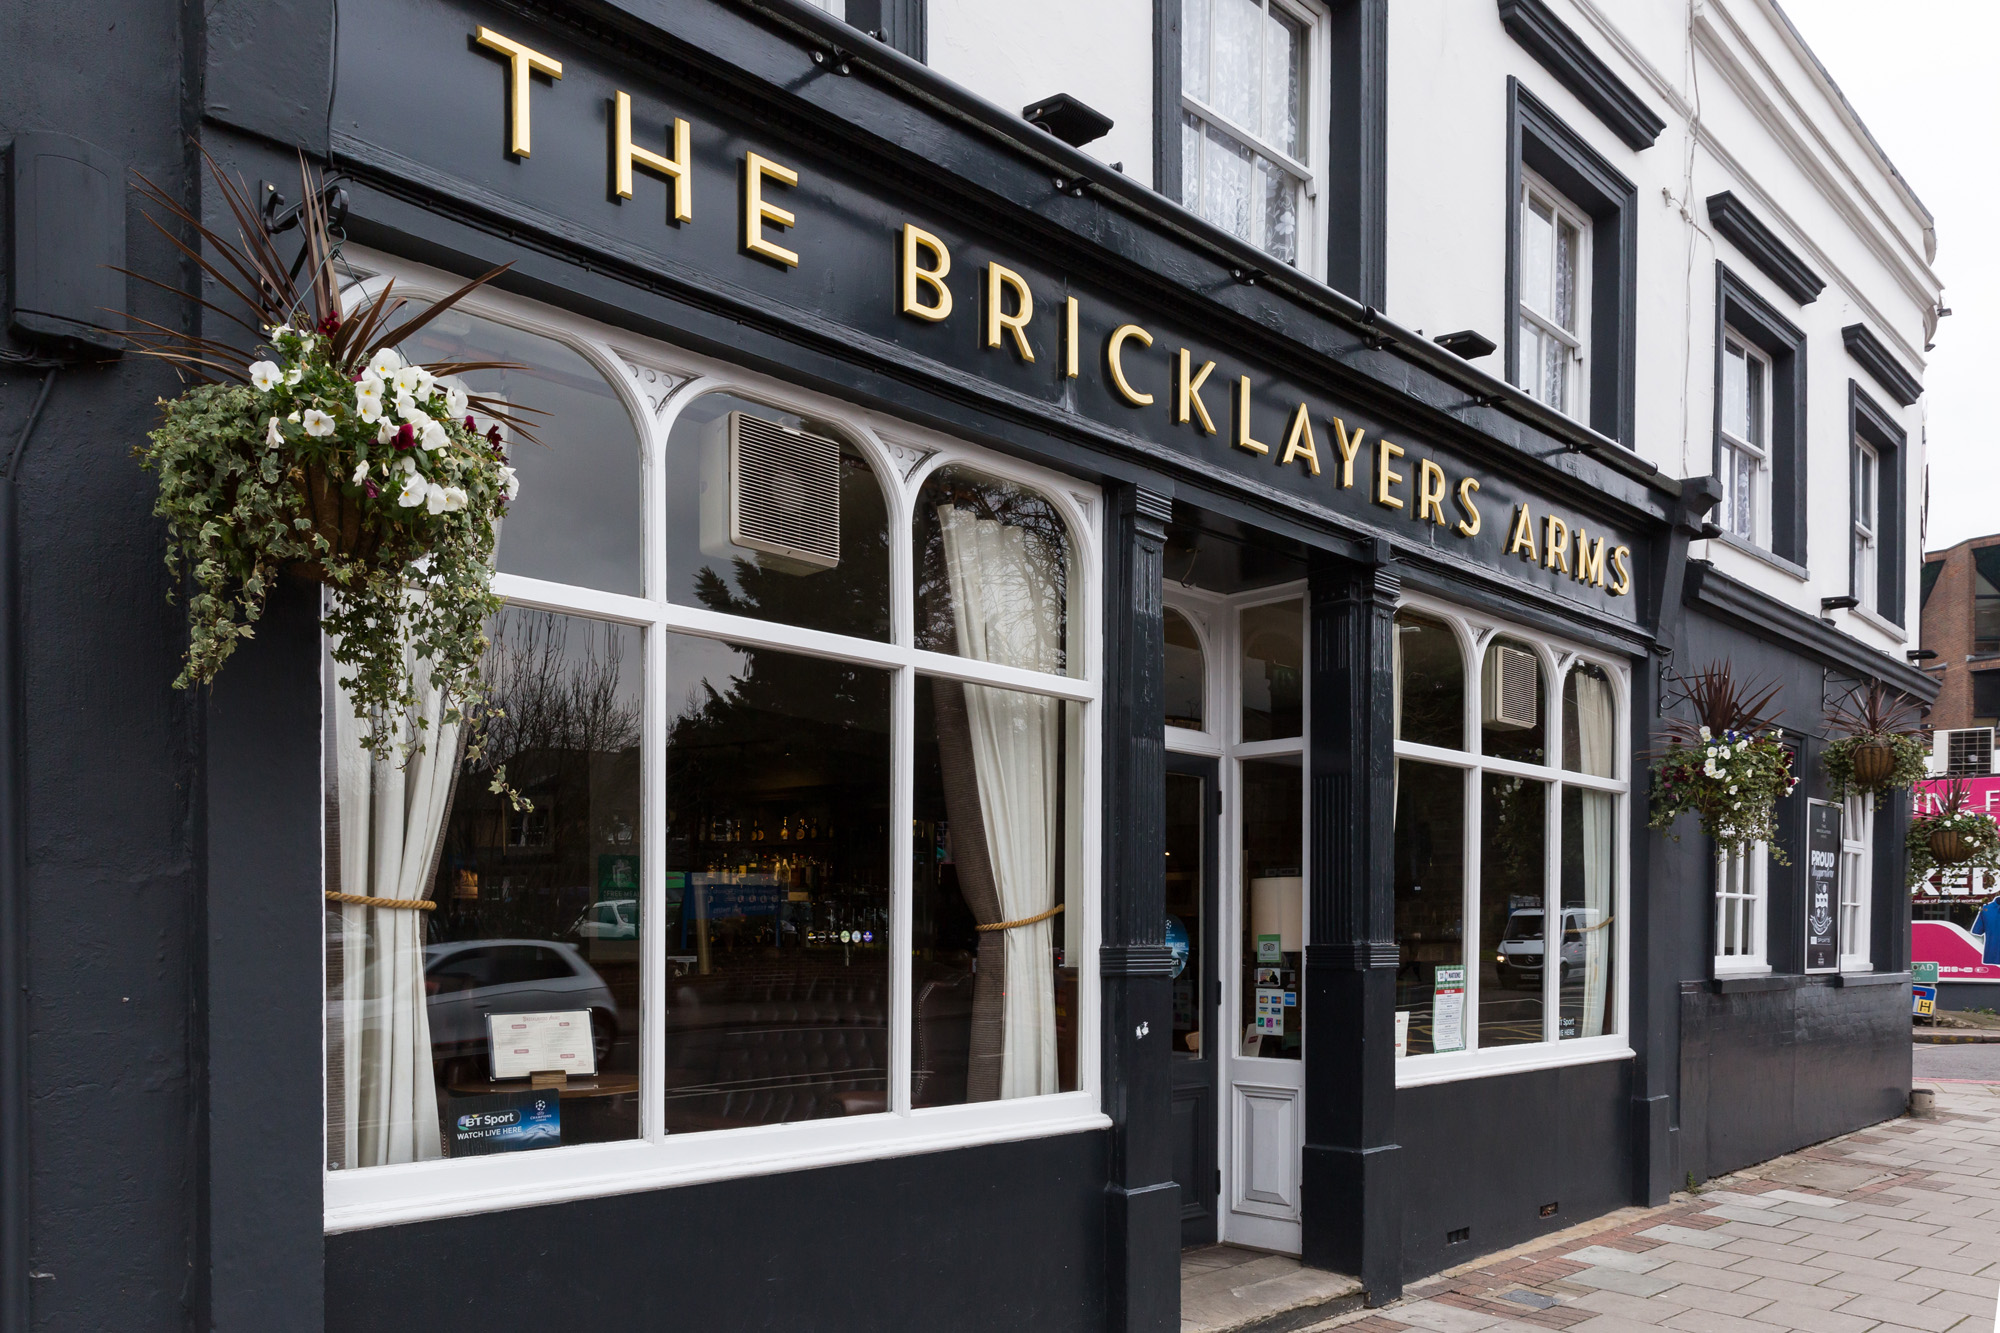 Bricklayers Arms, Bromley